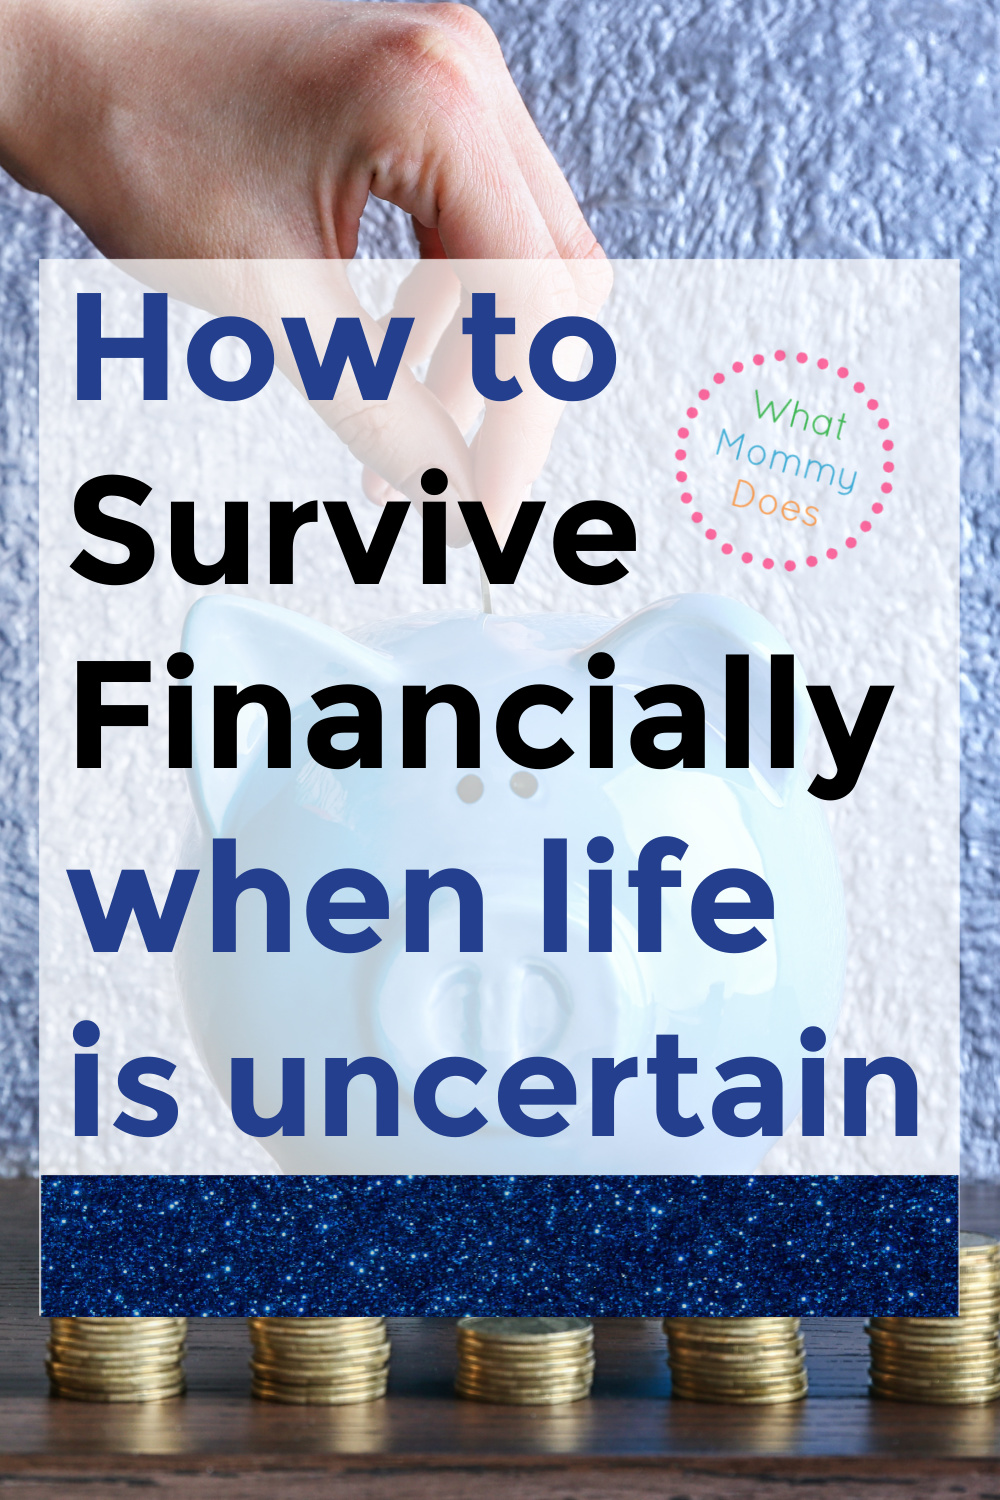 How to Survive Financially When Life is Uncertain